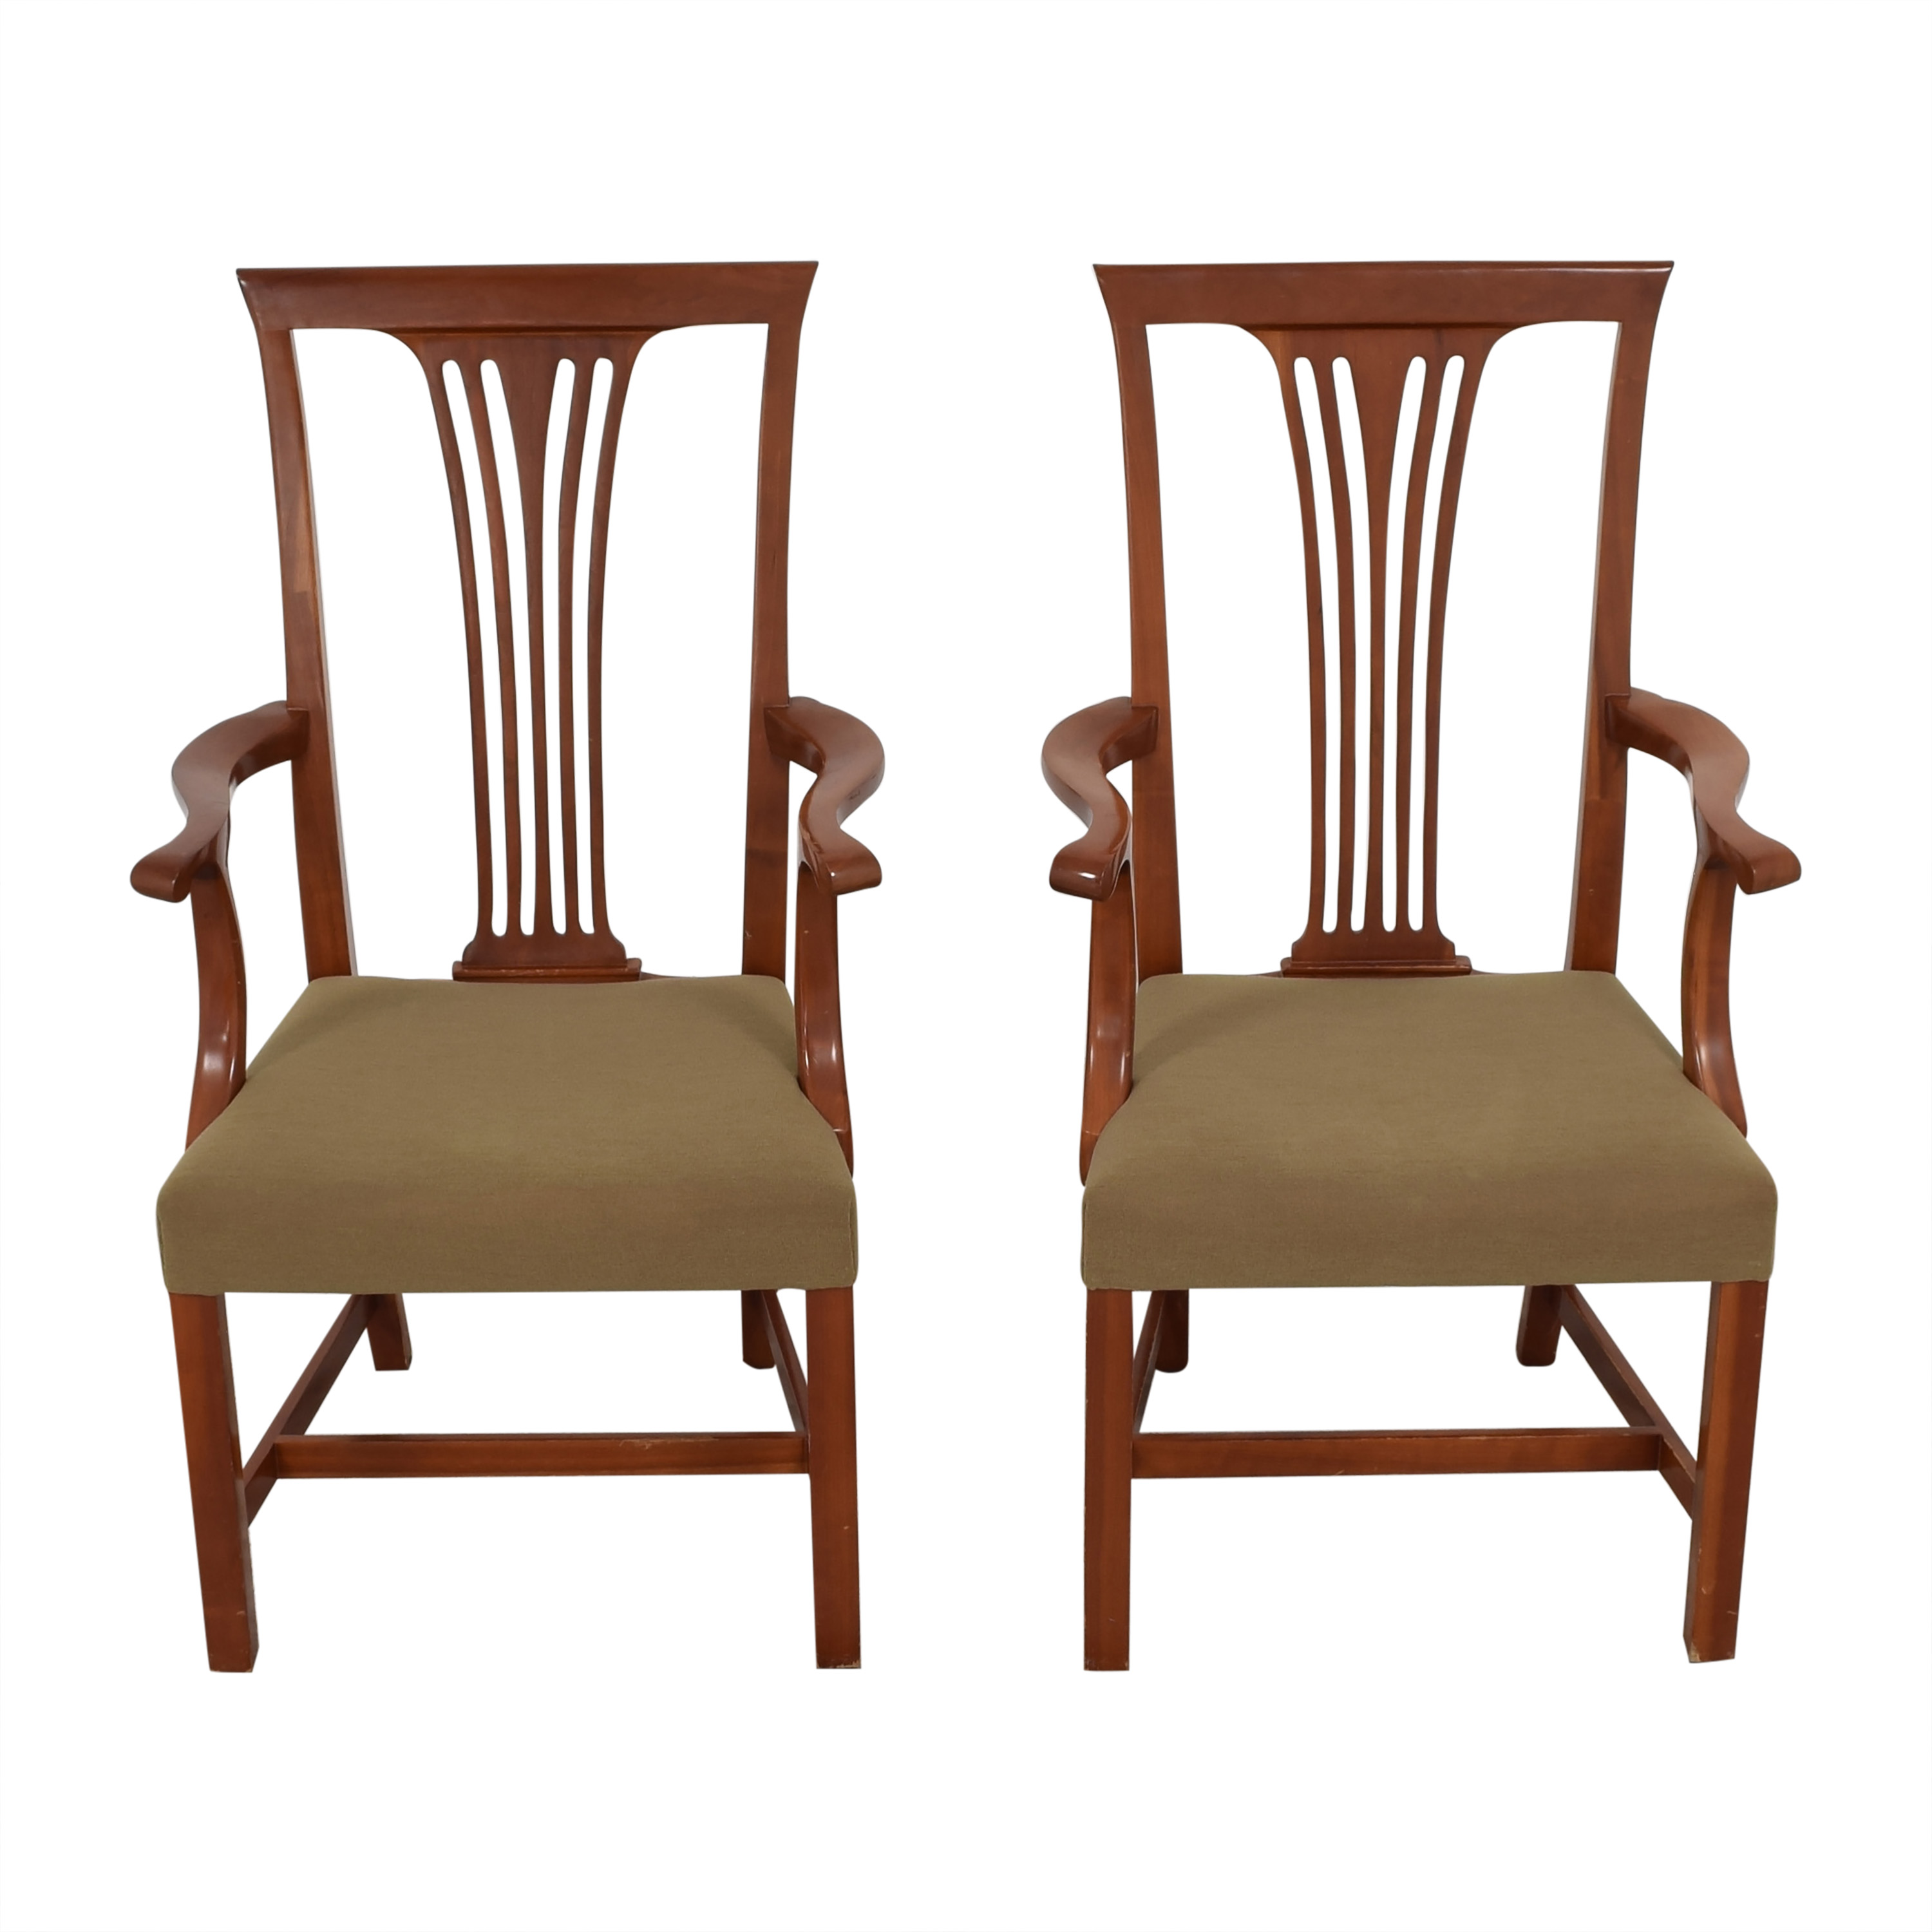 Bright Bright Dining Chairs Chairs